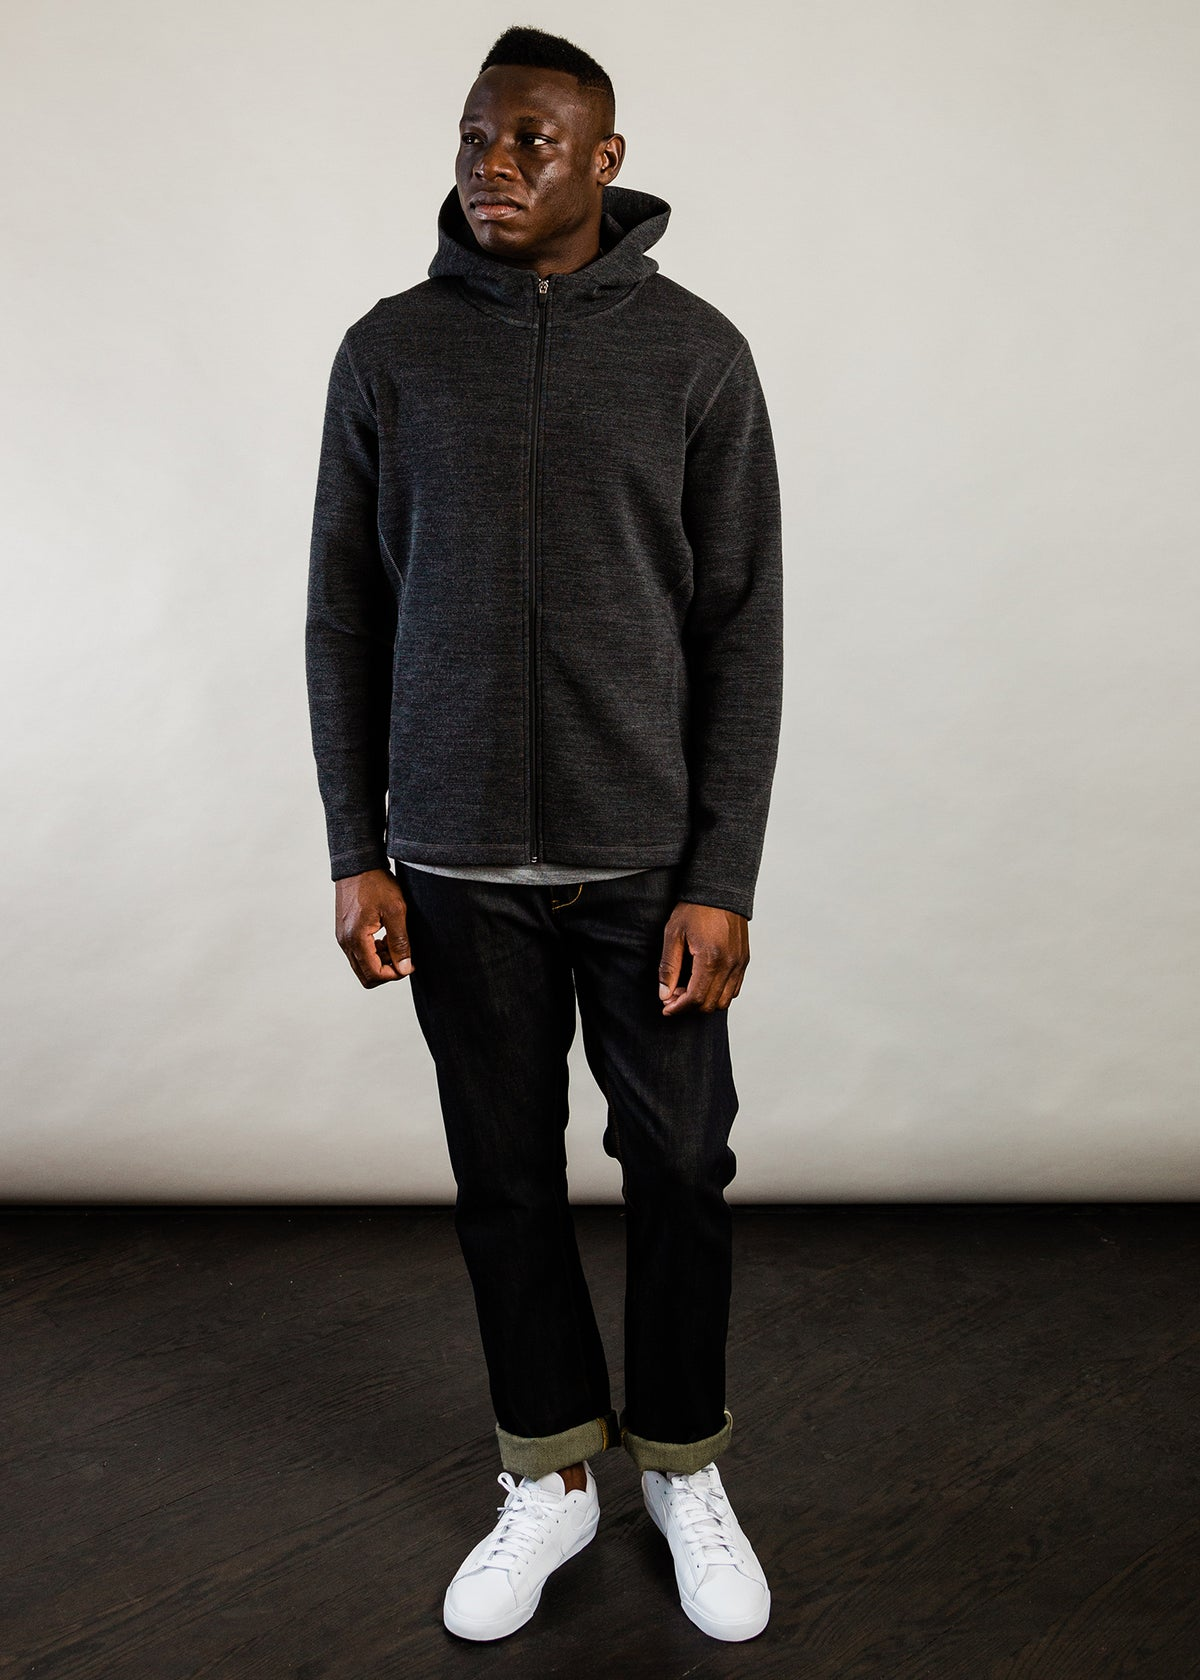 201 - NYLON HOODED ZIP - CHARCOAL - Wilson & Willy's - MPLS Neighbor Goods